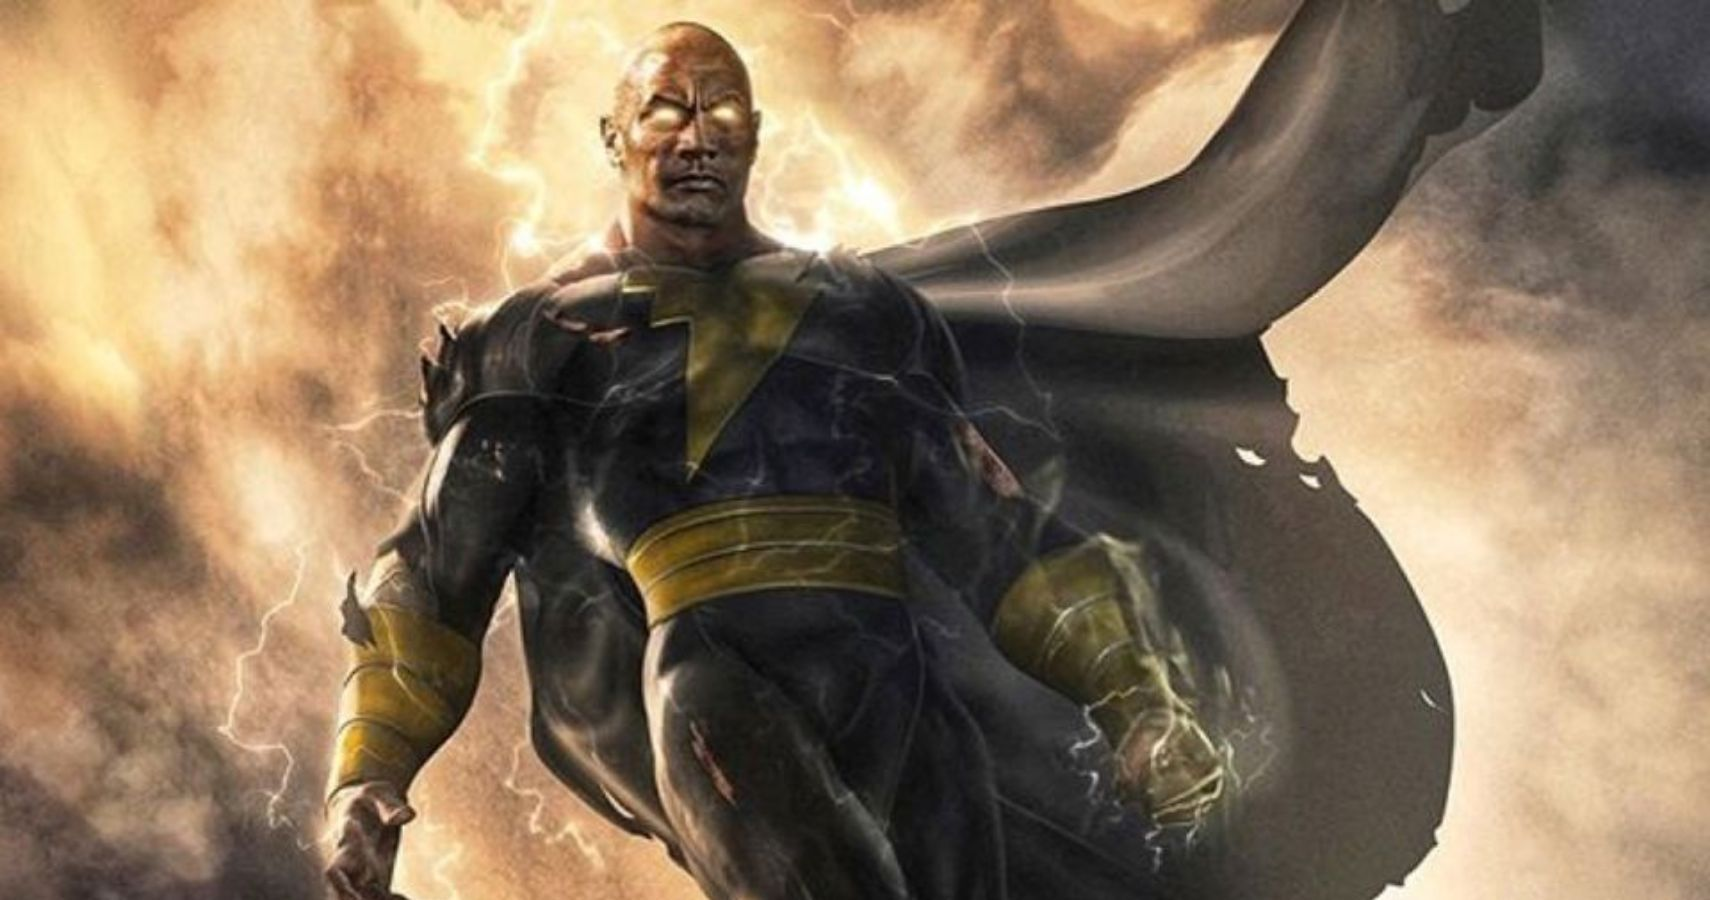 Black Adam's Suit Won't Need Muscle Padding, Thanks To Dwayne Johnson's Physique